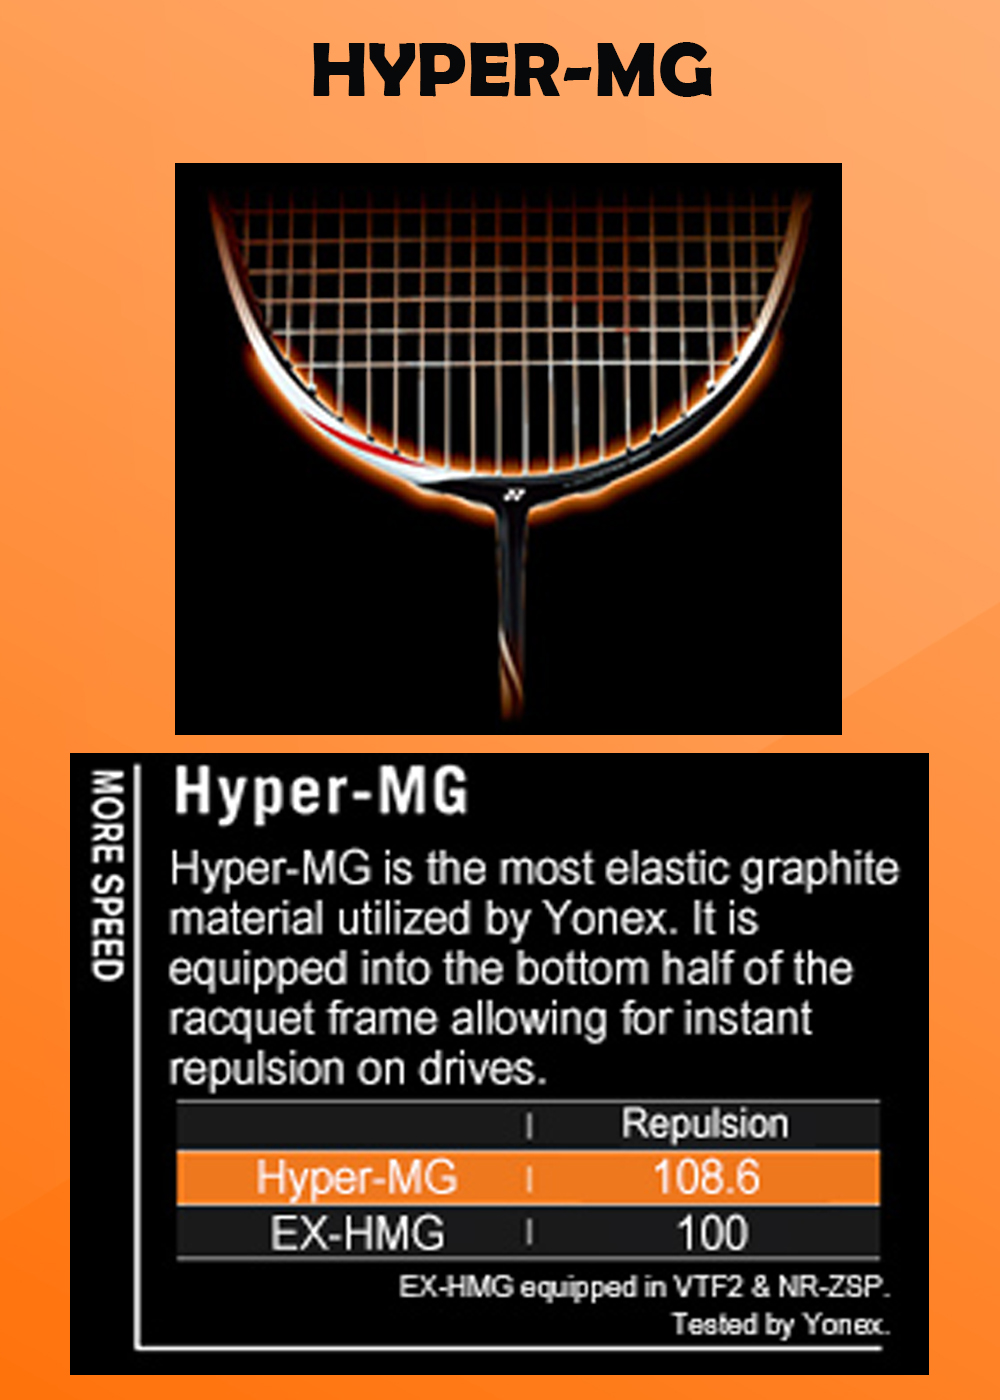 HYPER-MG TECHNOLOGY_D